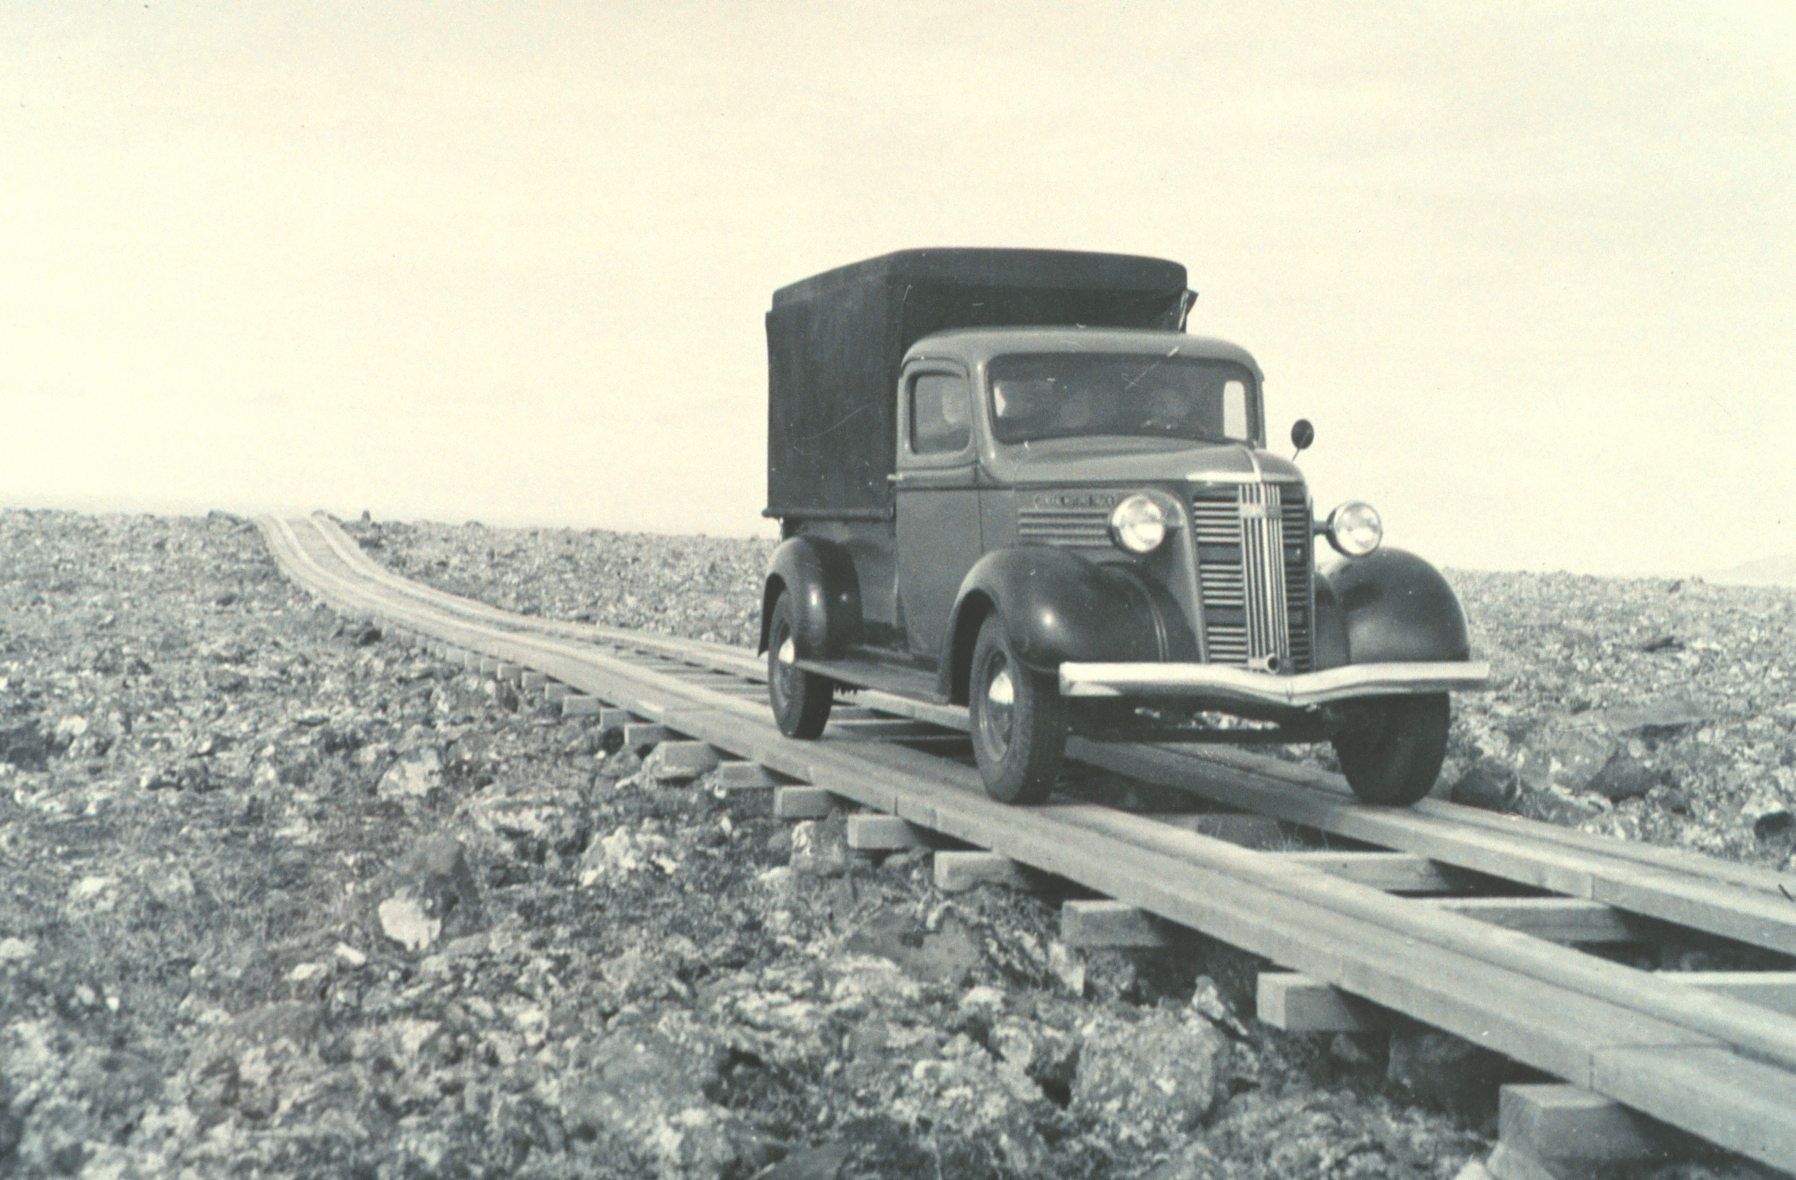 Imagine traveling on plank roads like this between cities